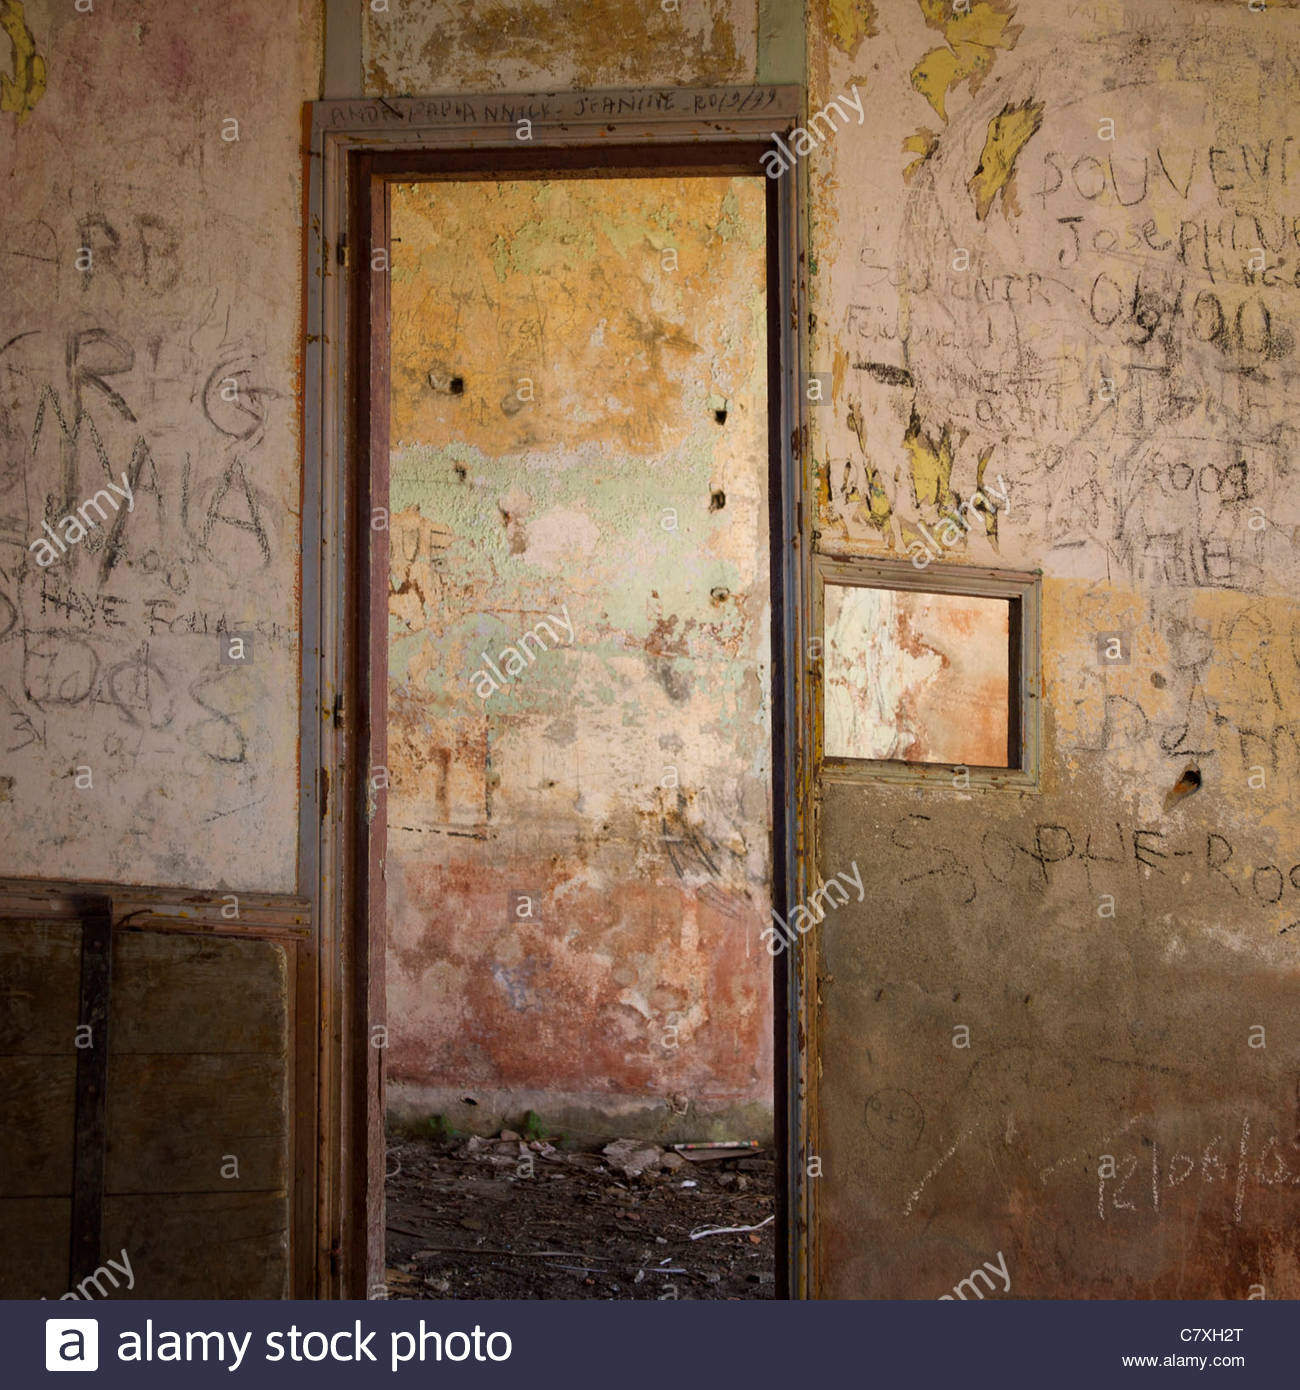 Doorway and walls with graffiti - Stock Image